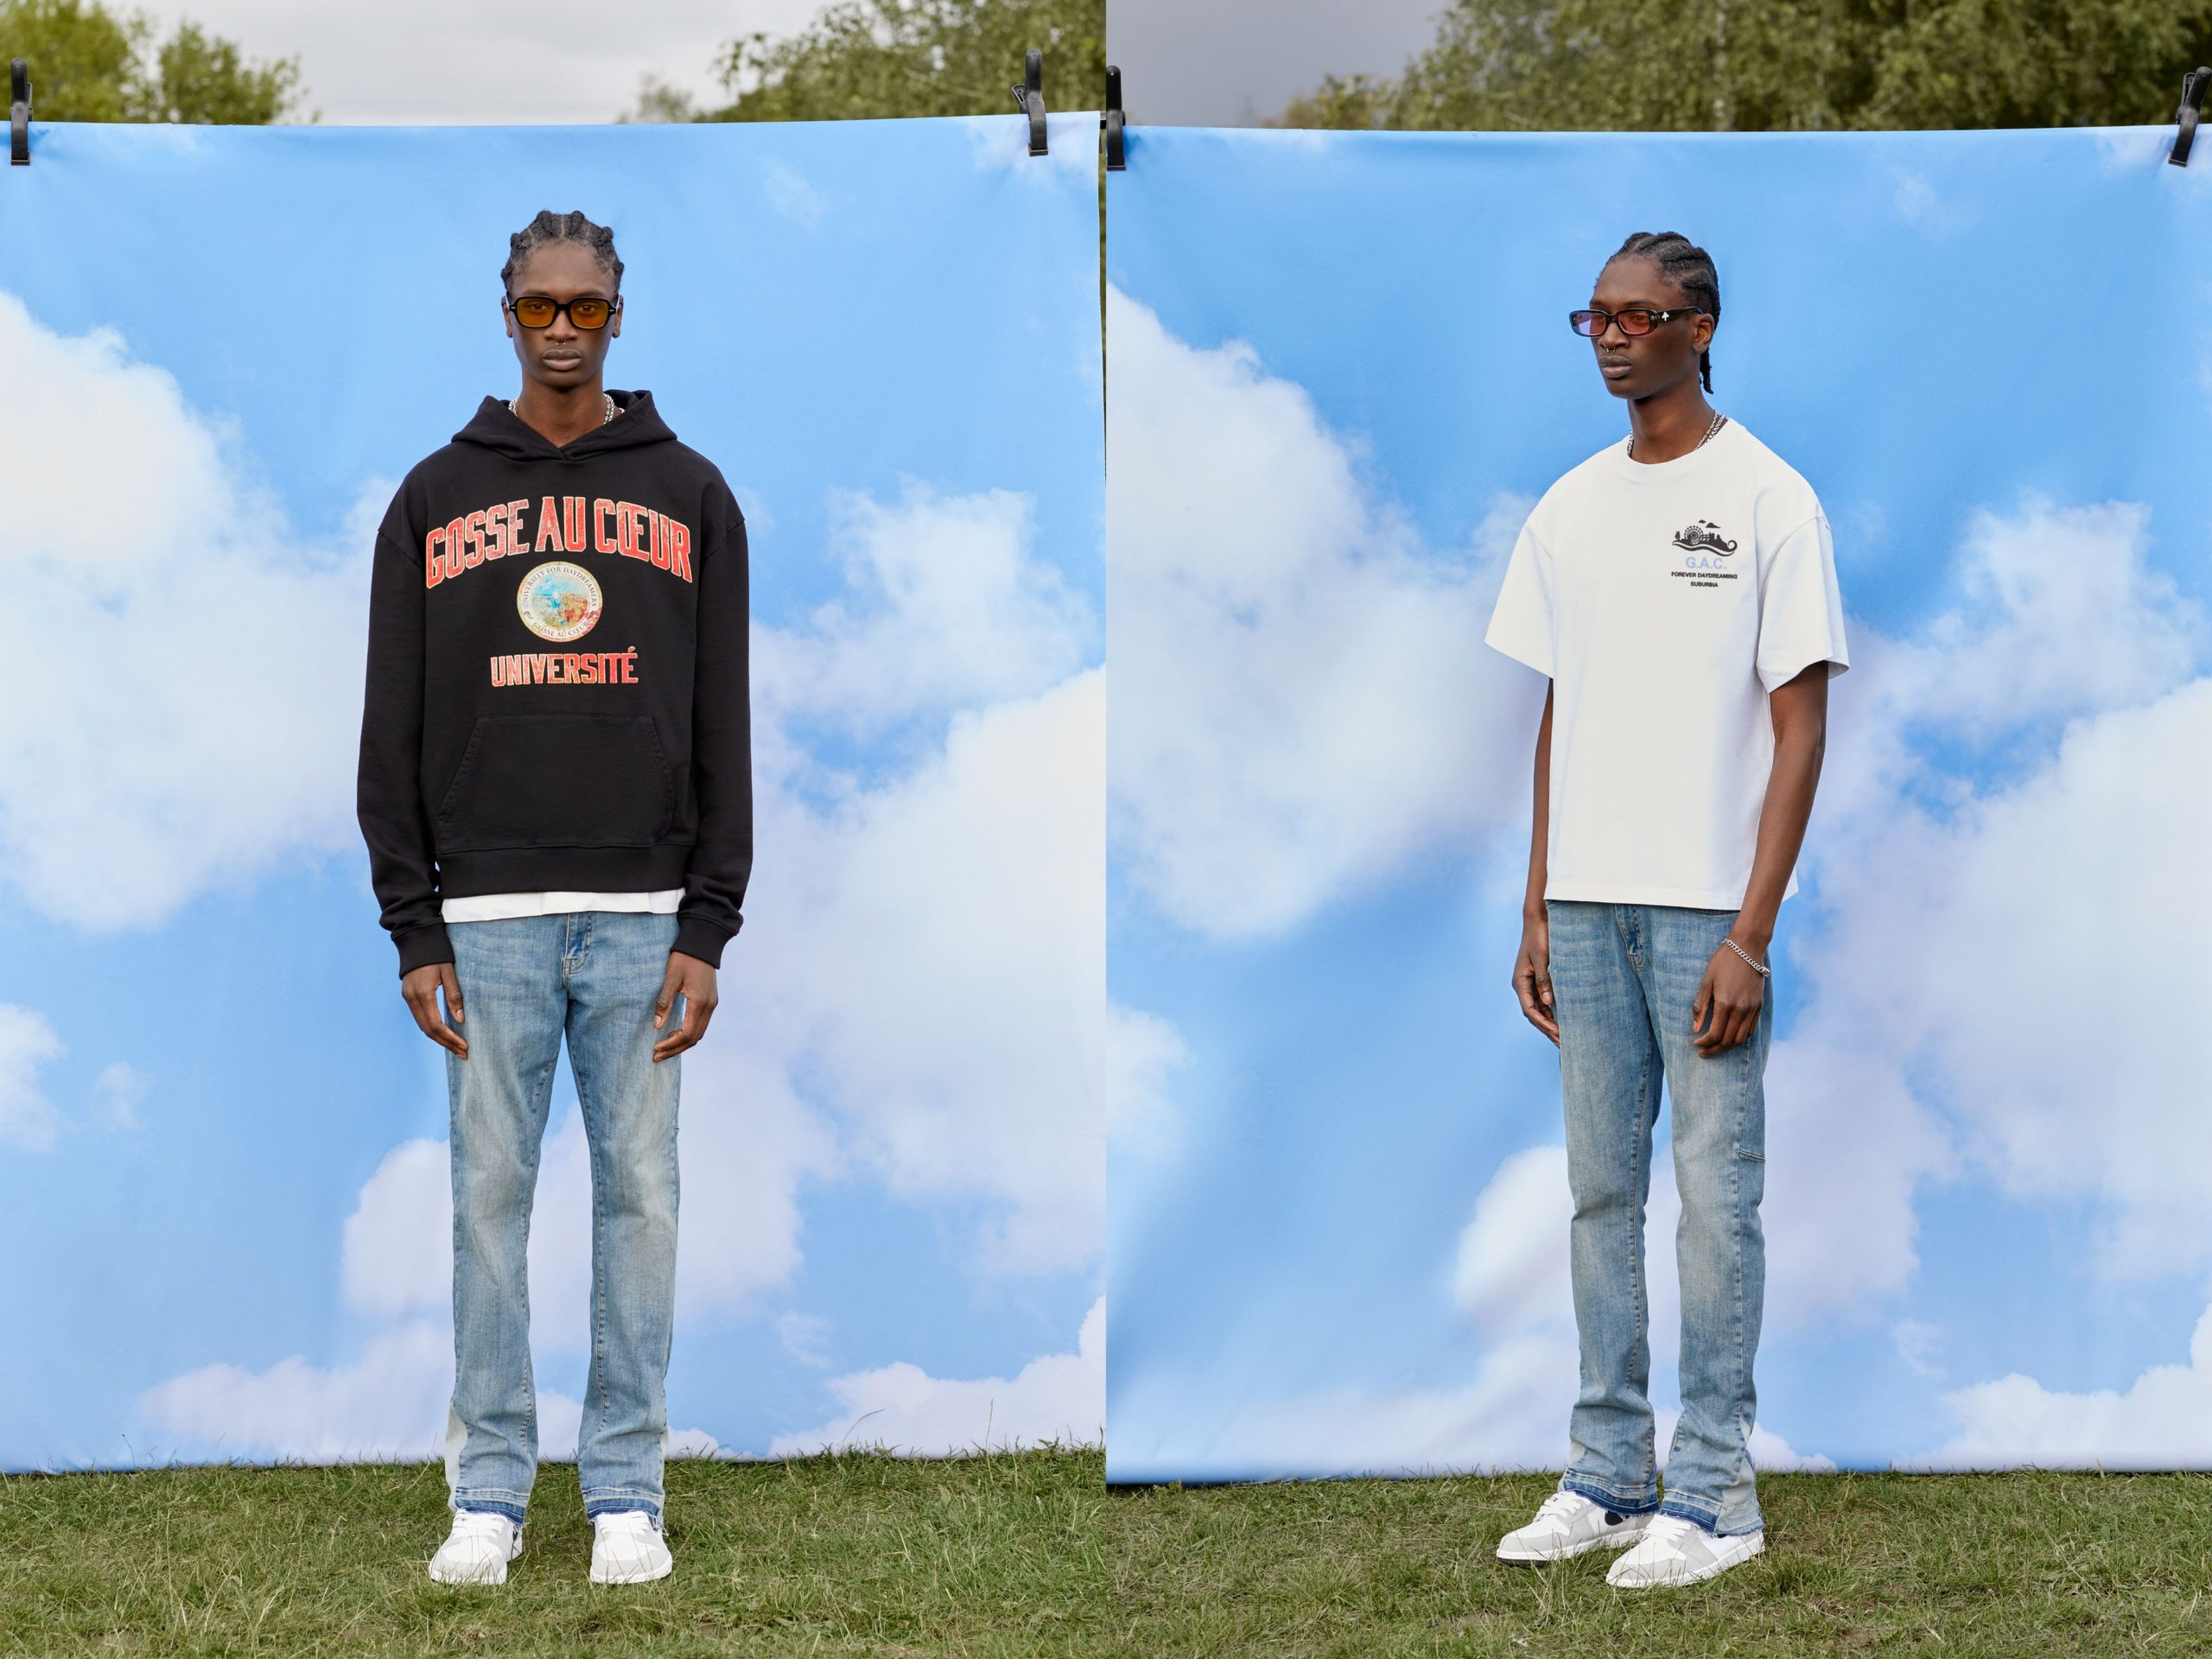 GOSSE au CŒUR Releases Lookbook for Its Third Collection